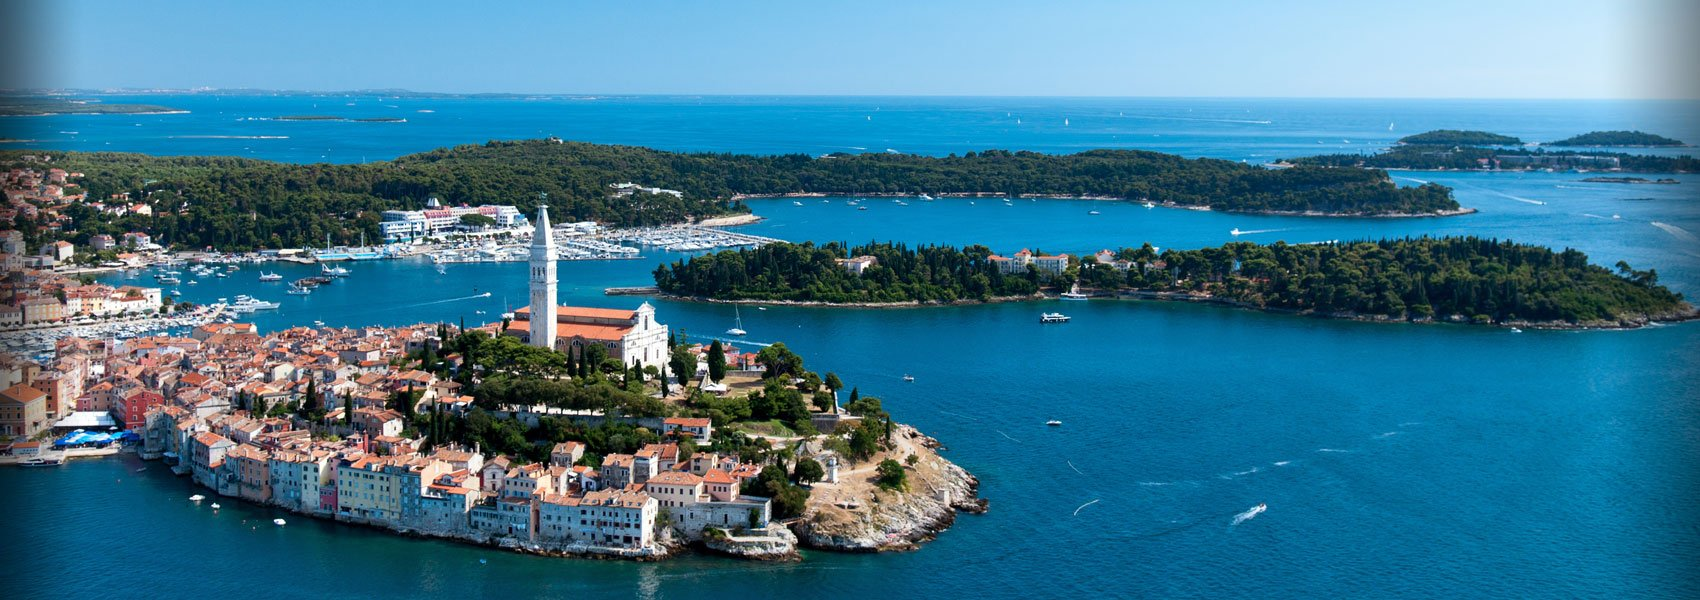 Amazing Rovinj Pictures & Backgrounds